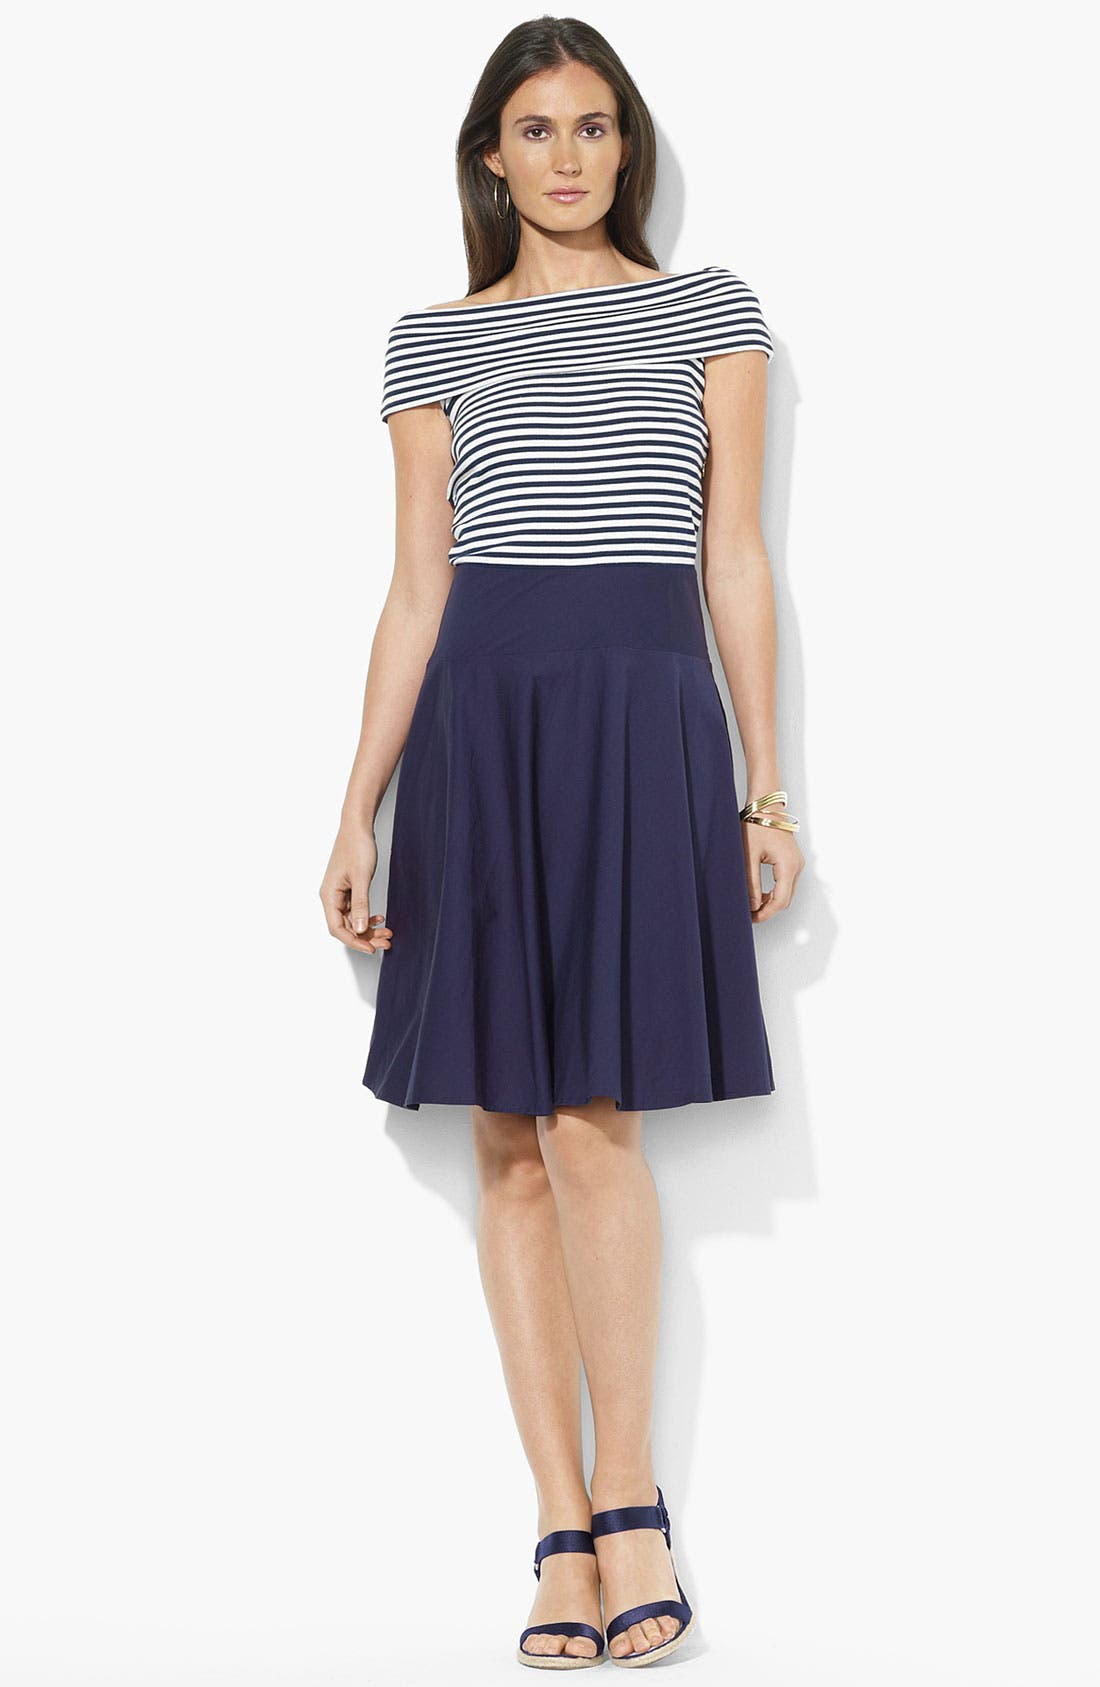 Main Image - Lauren Ralph Lauren Bateau Neck Woven Skirt Dress (Petite)